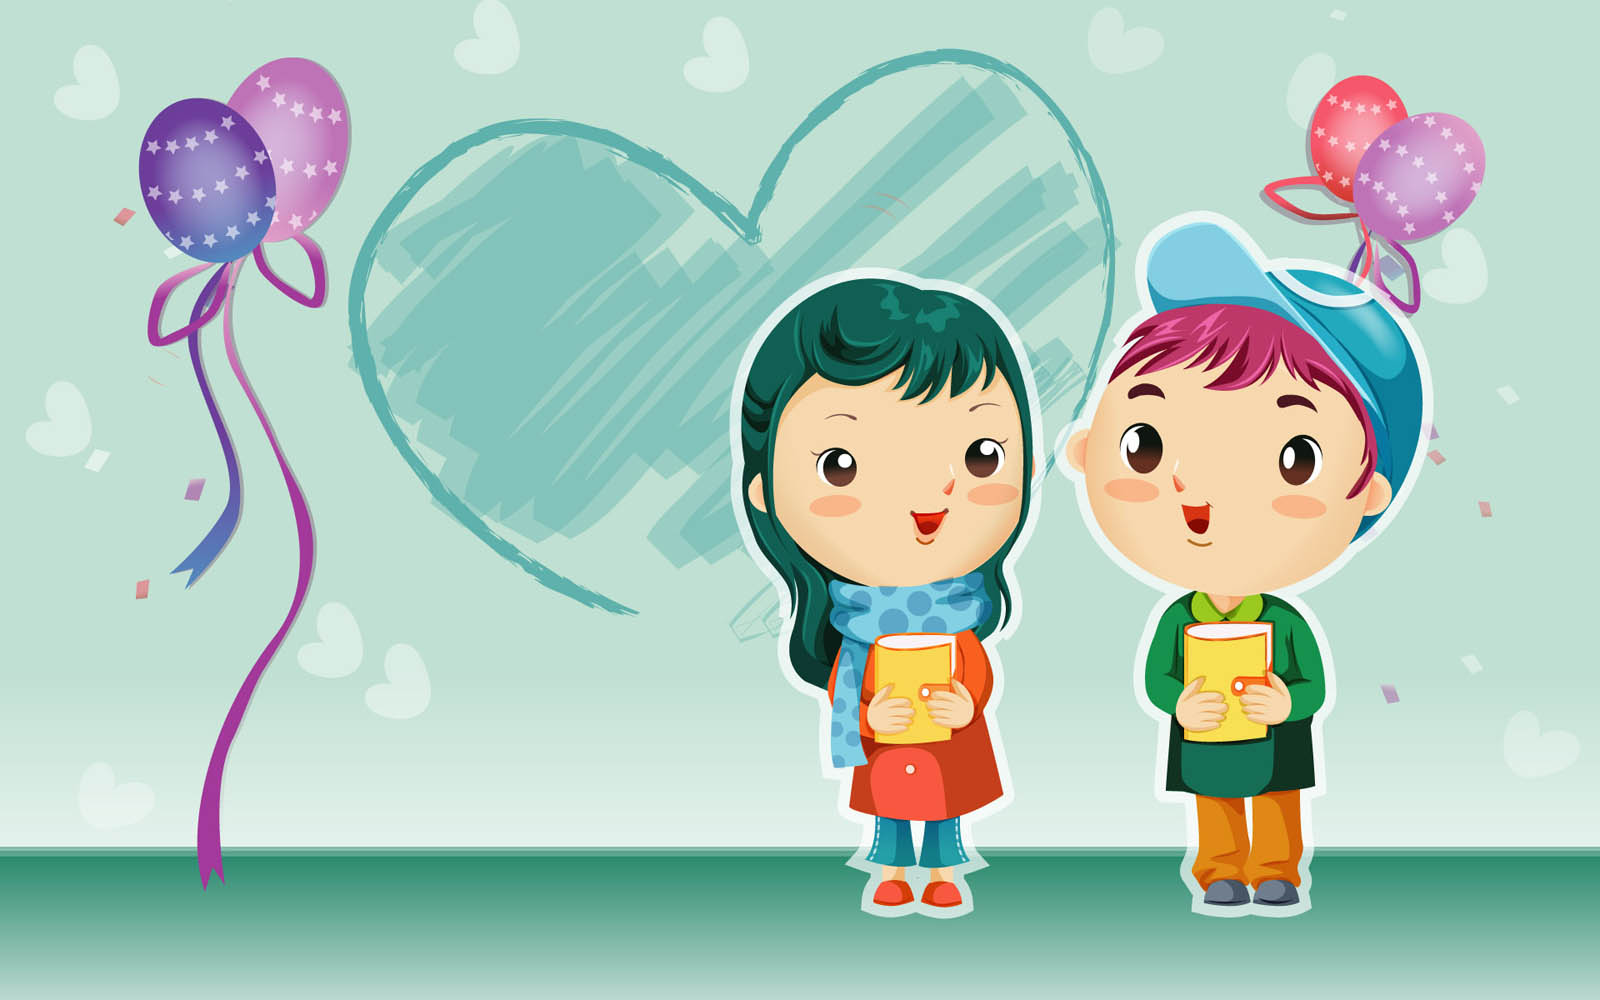 Love Wallpaper cartoon : wallpapers: cartoon Love Wallpapers